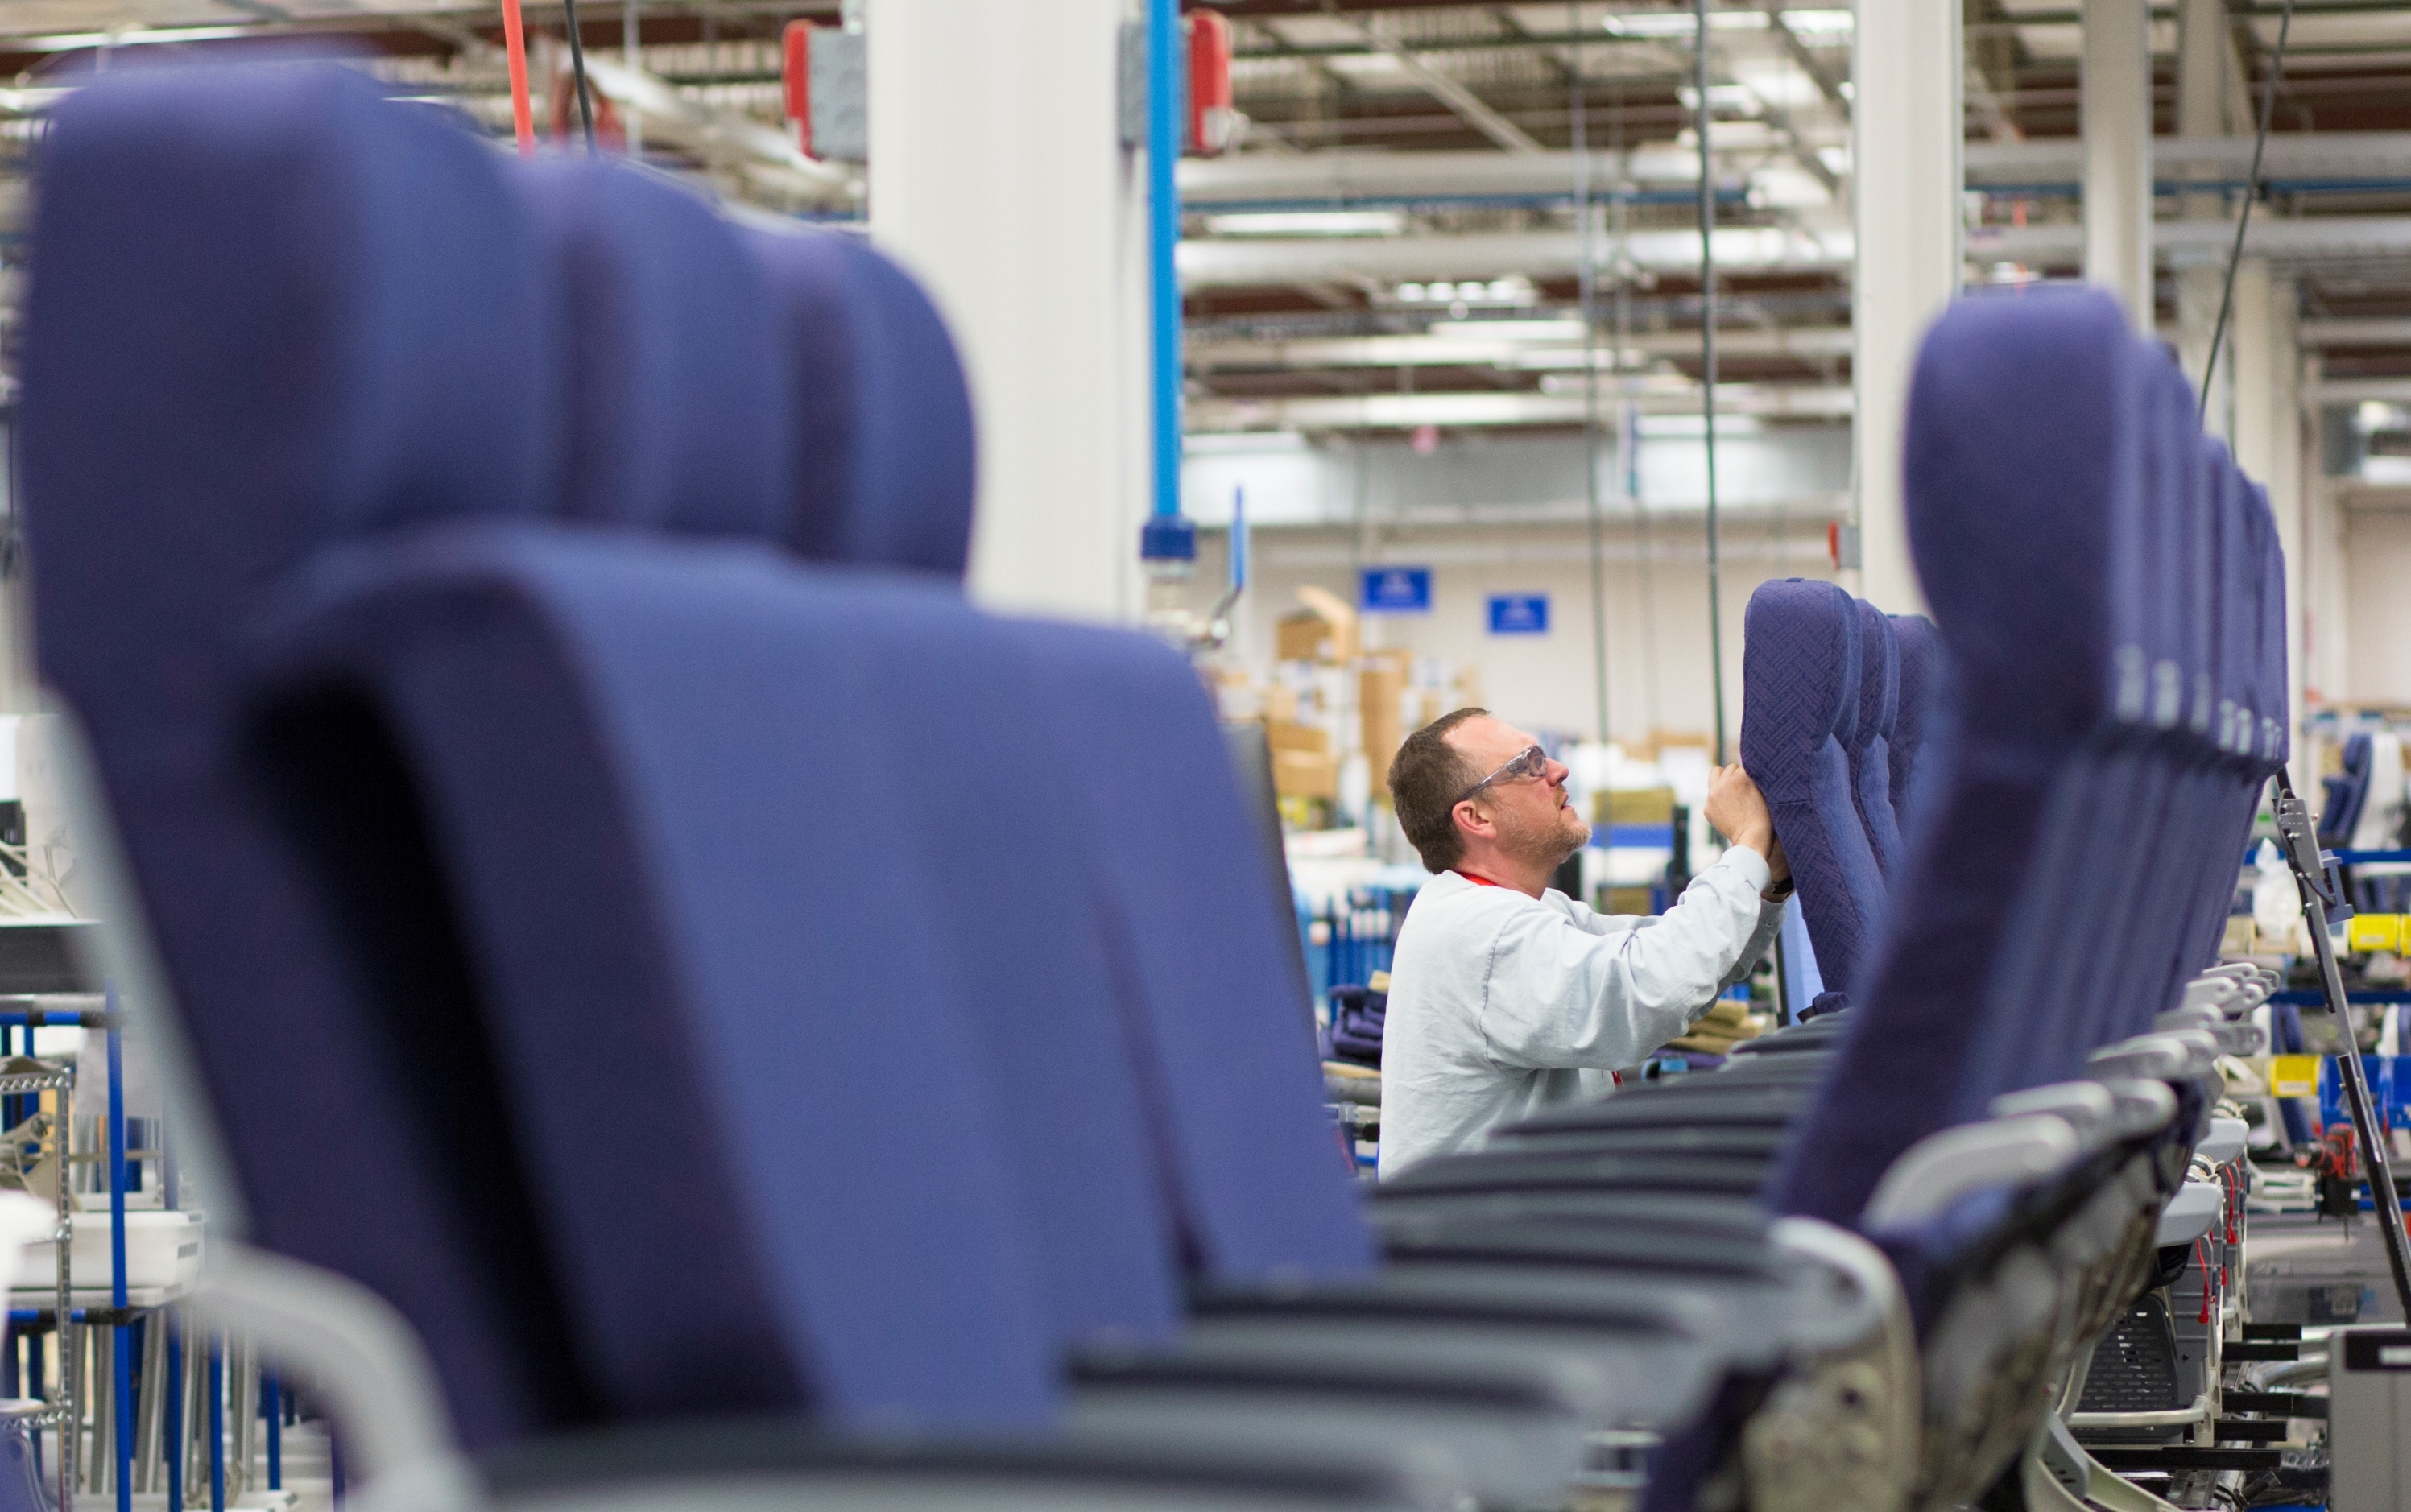 An employee from Rockwell Collins' new Interior Systems business building airline cabin seats at its Winston-Salem, North Carolina-based facility. (Photo: Business Wire)